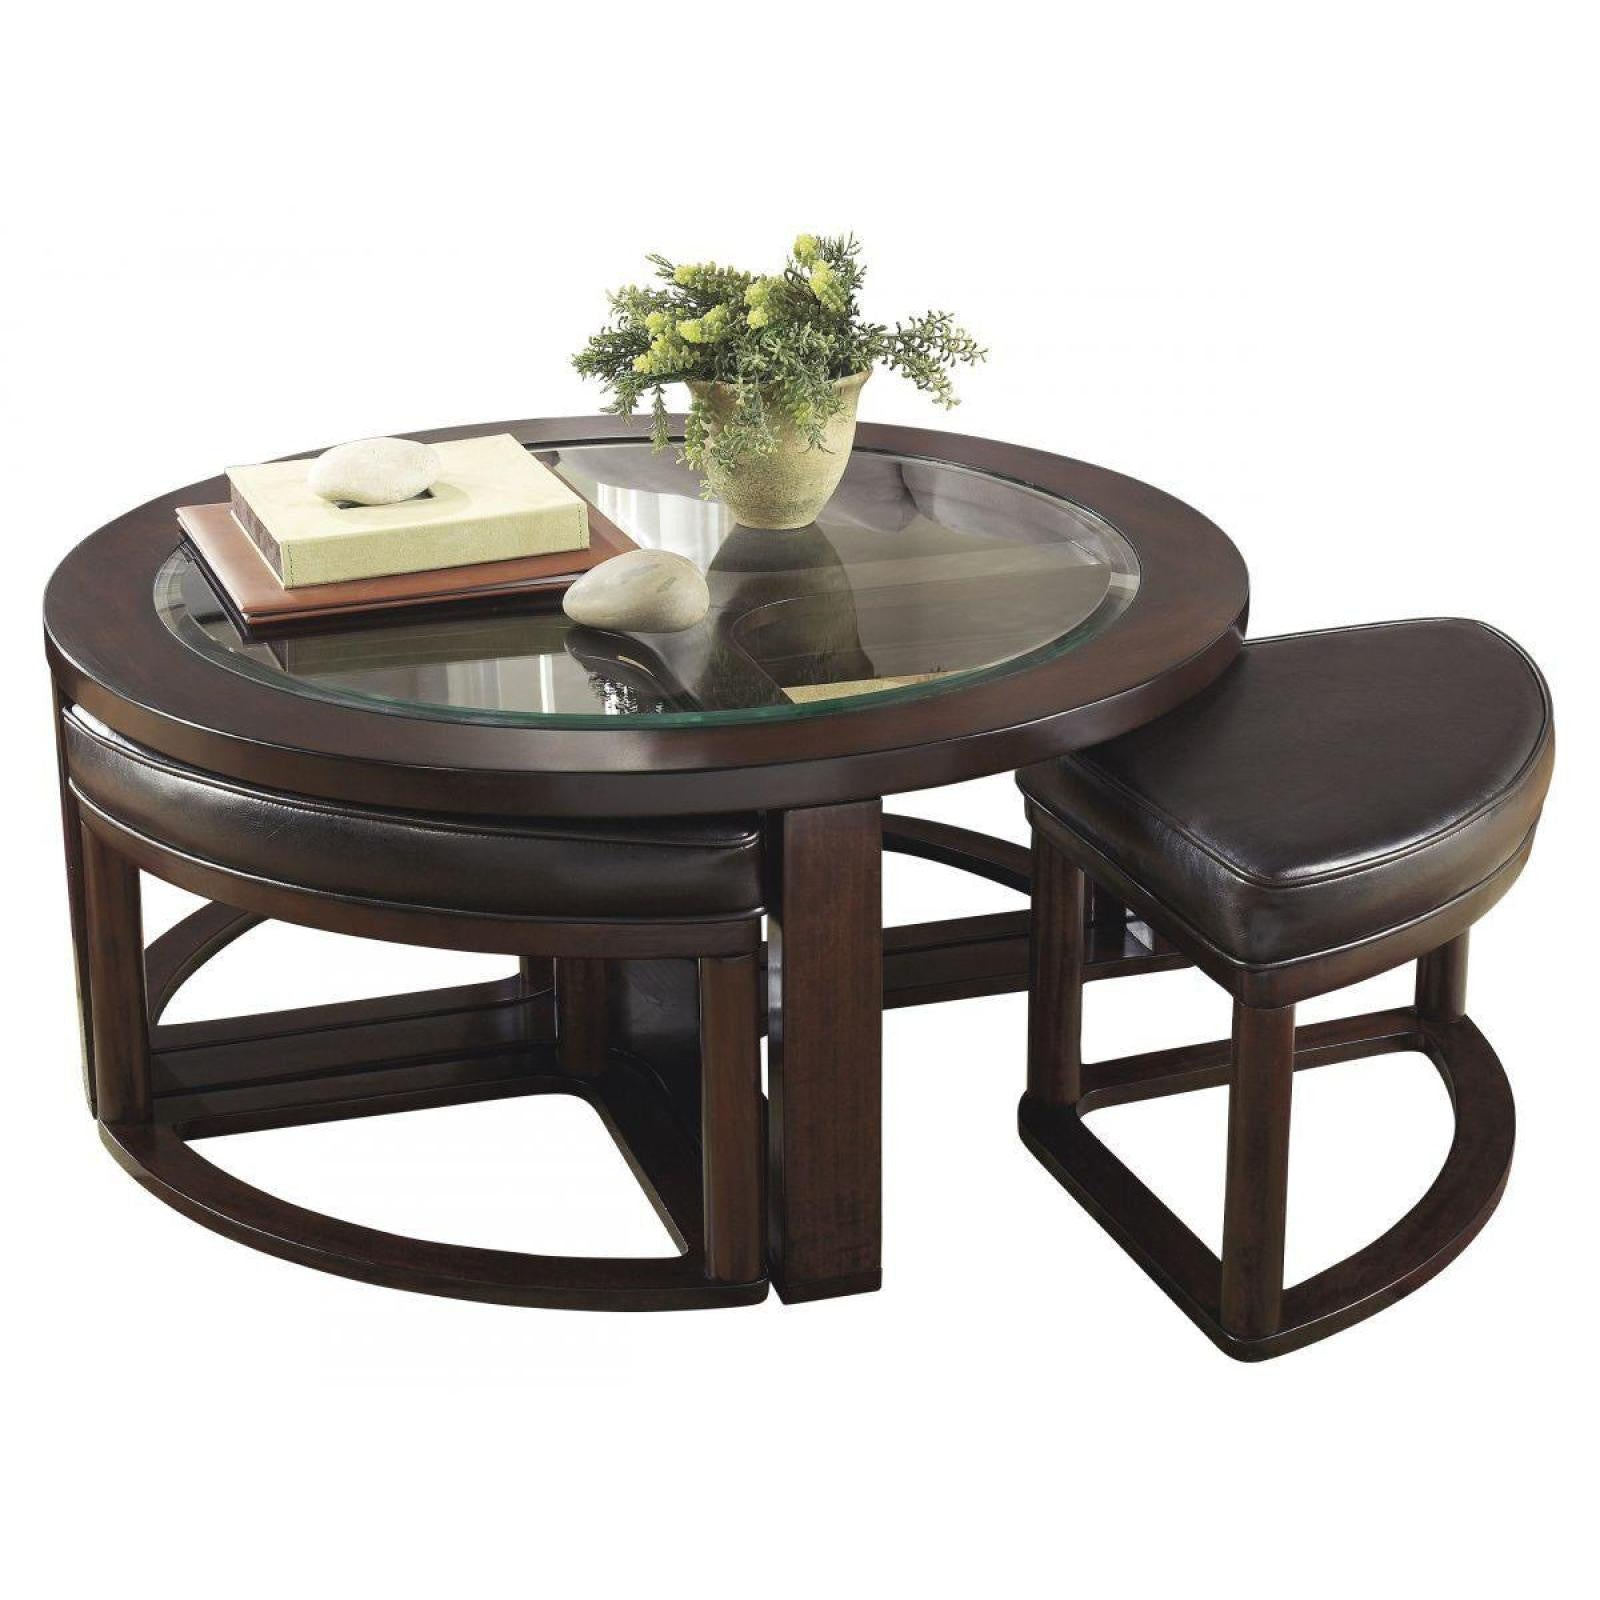 Incroyable Marion Round Coffee Table With 4 Stools, Occasional Tables, Ashley  Furniture   Adams Furniture ...